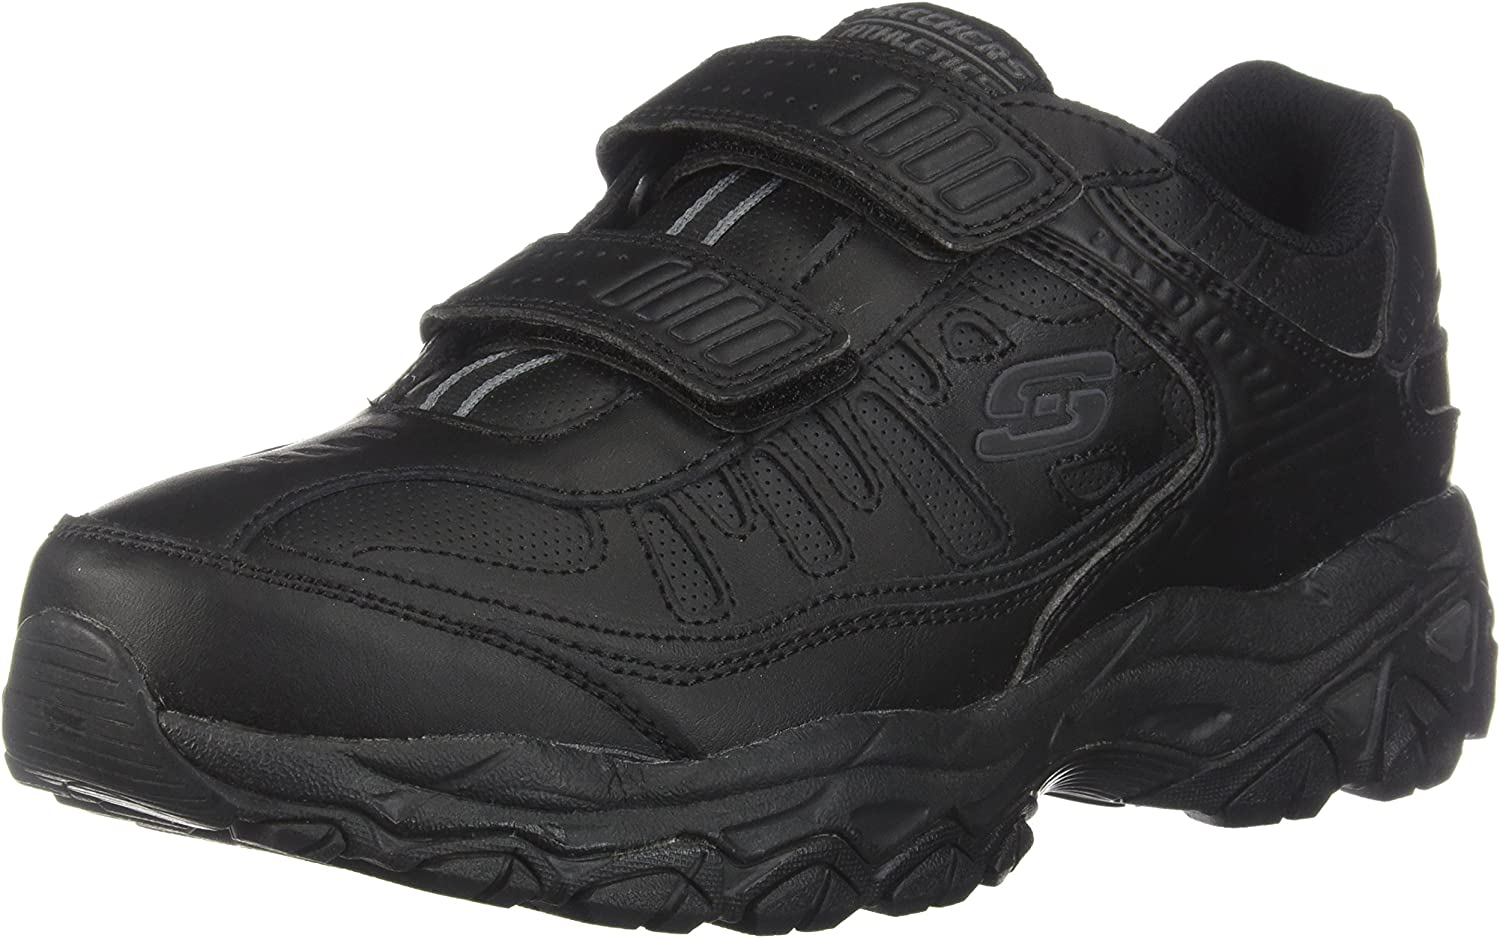 Skechers Men's Afterburn Strike Memory